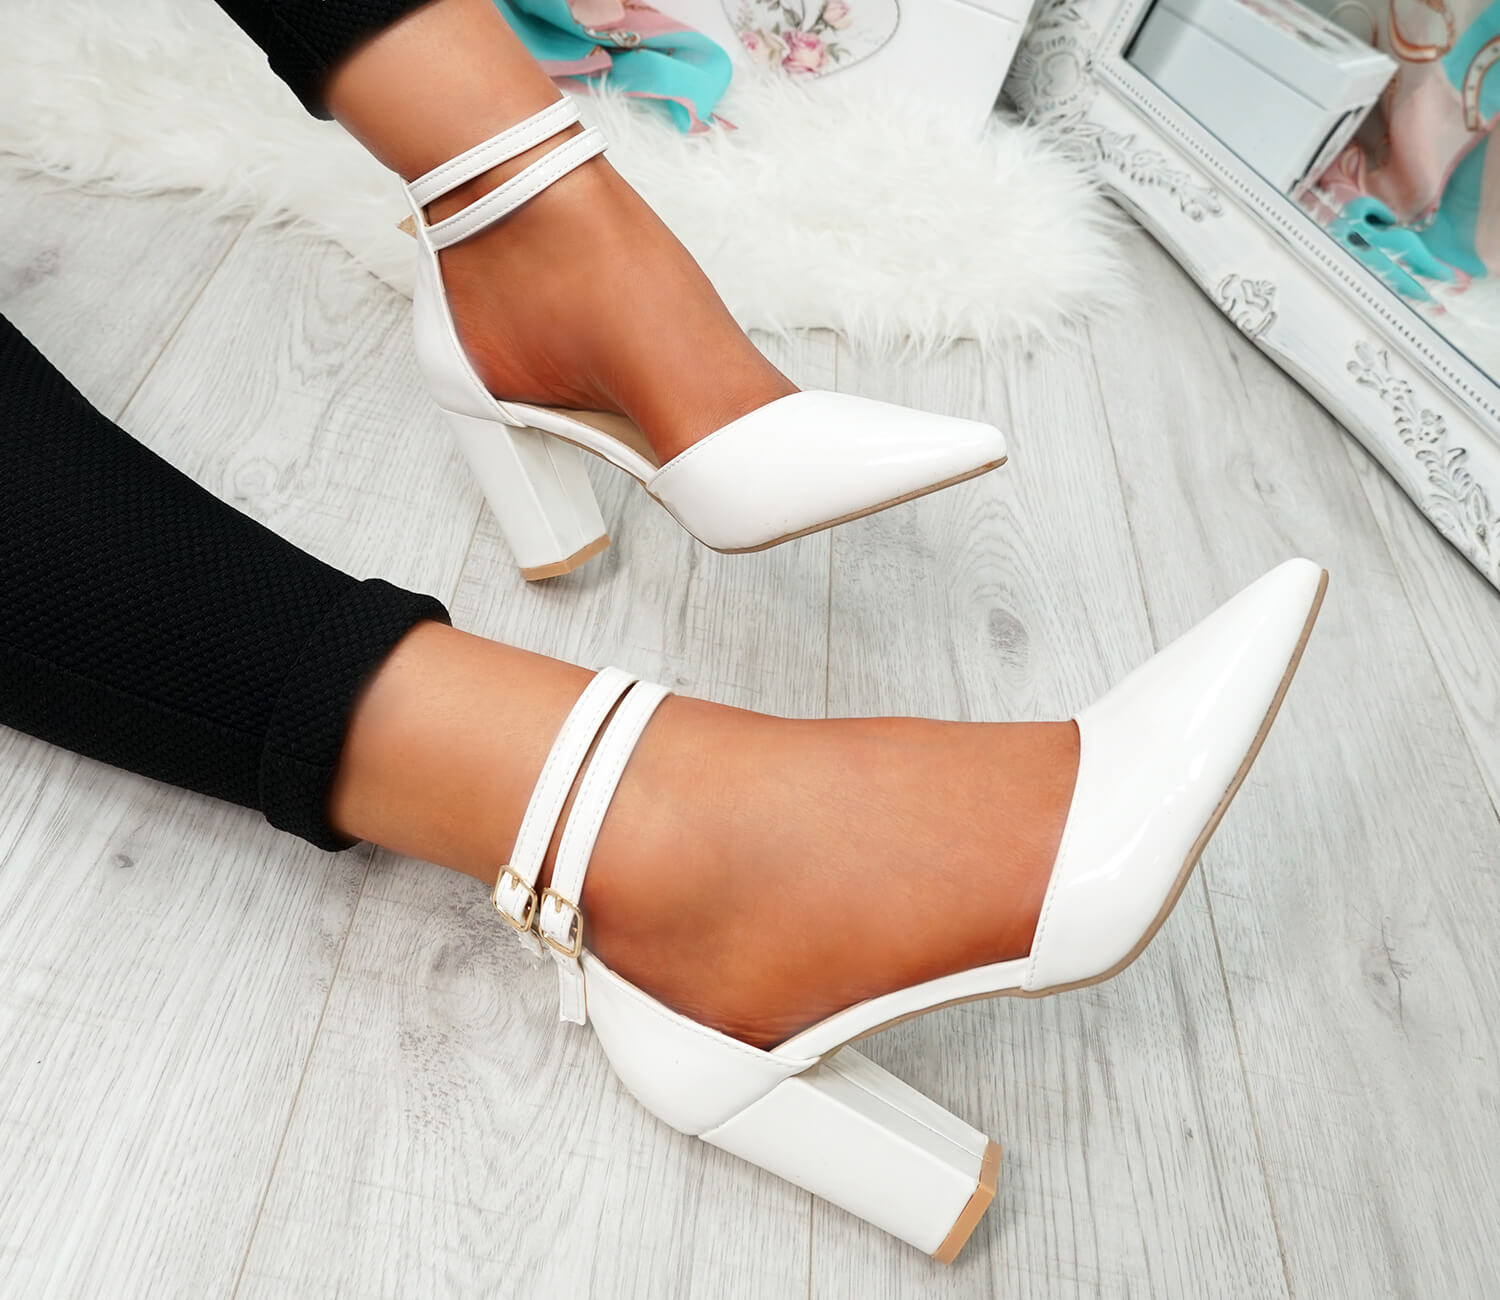 WOMENS-LADIES-ANKLE-DOUBLE-STRAP-HIGH-BLOCK-HEEL-POINTED-TOE-PARTY-SHOES-SIZE thumbnail 20